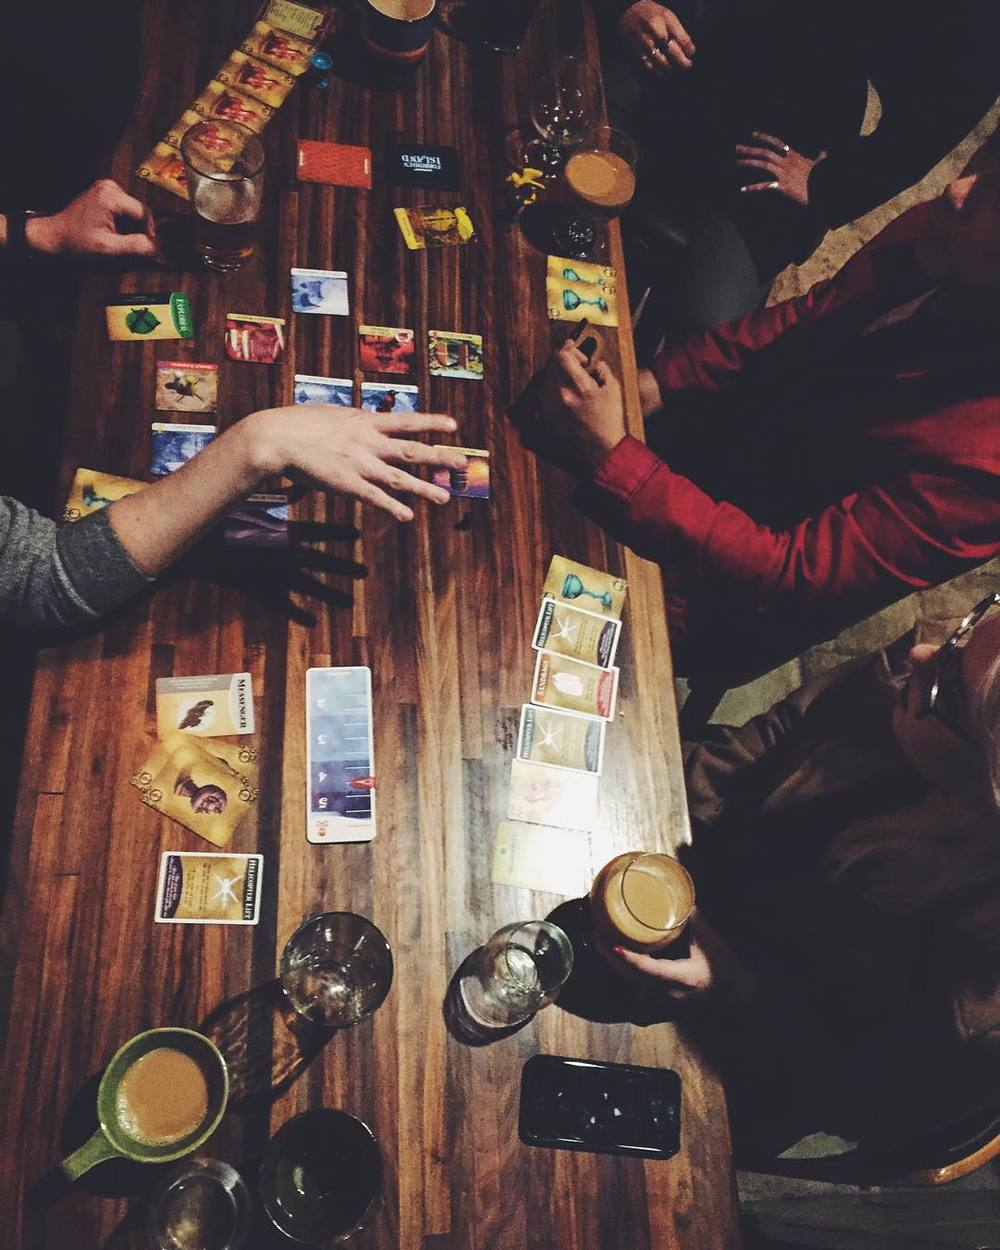 @liz.wakefield doing it right with some card gaming and alcohol.